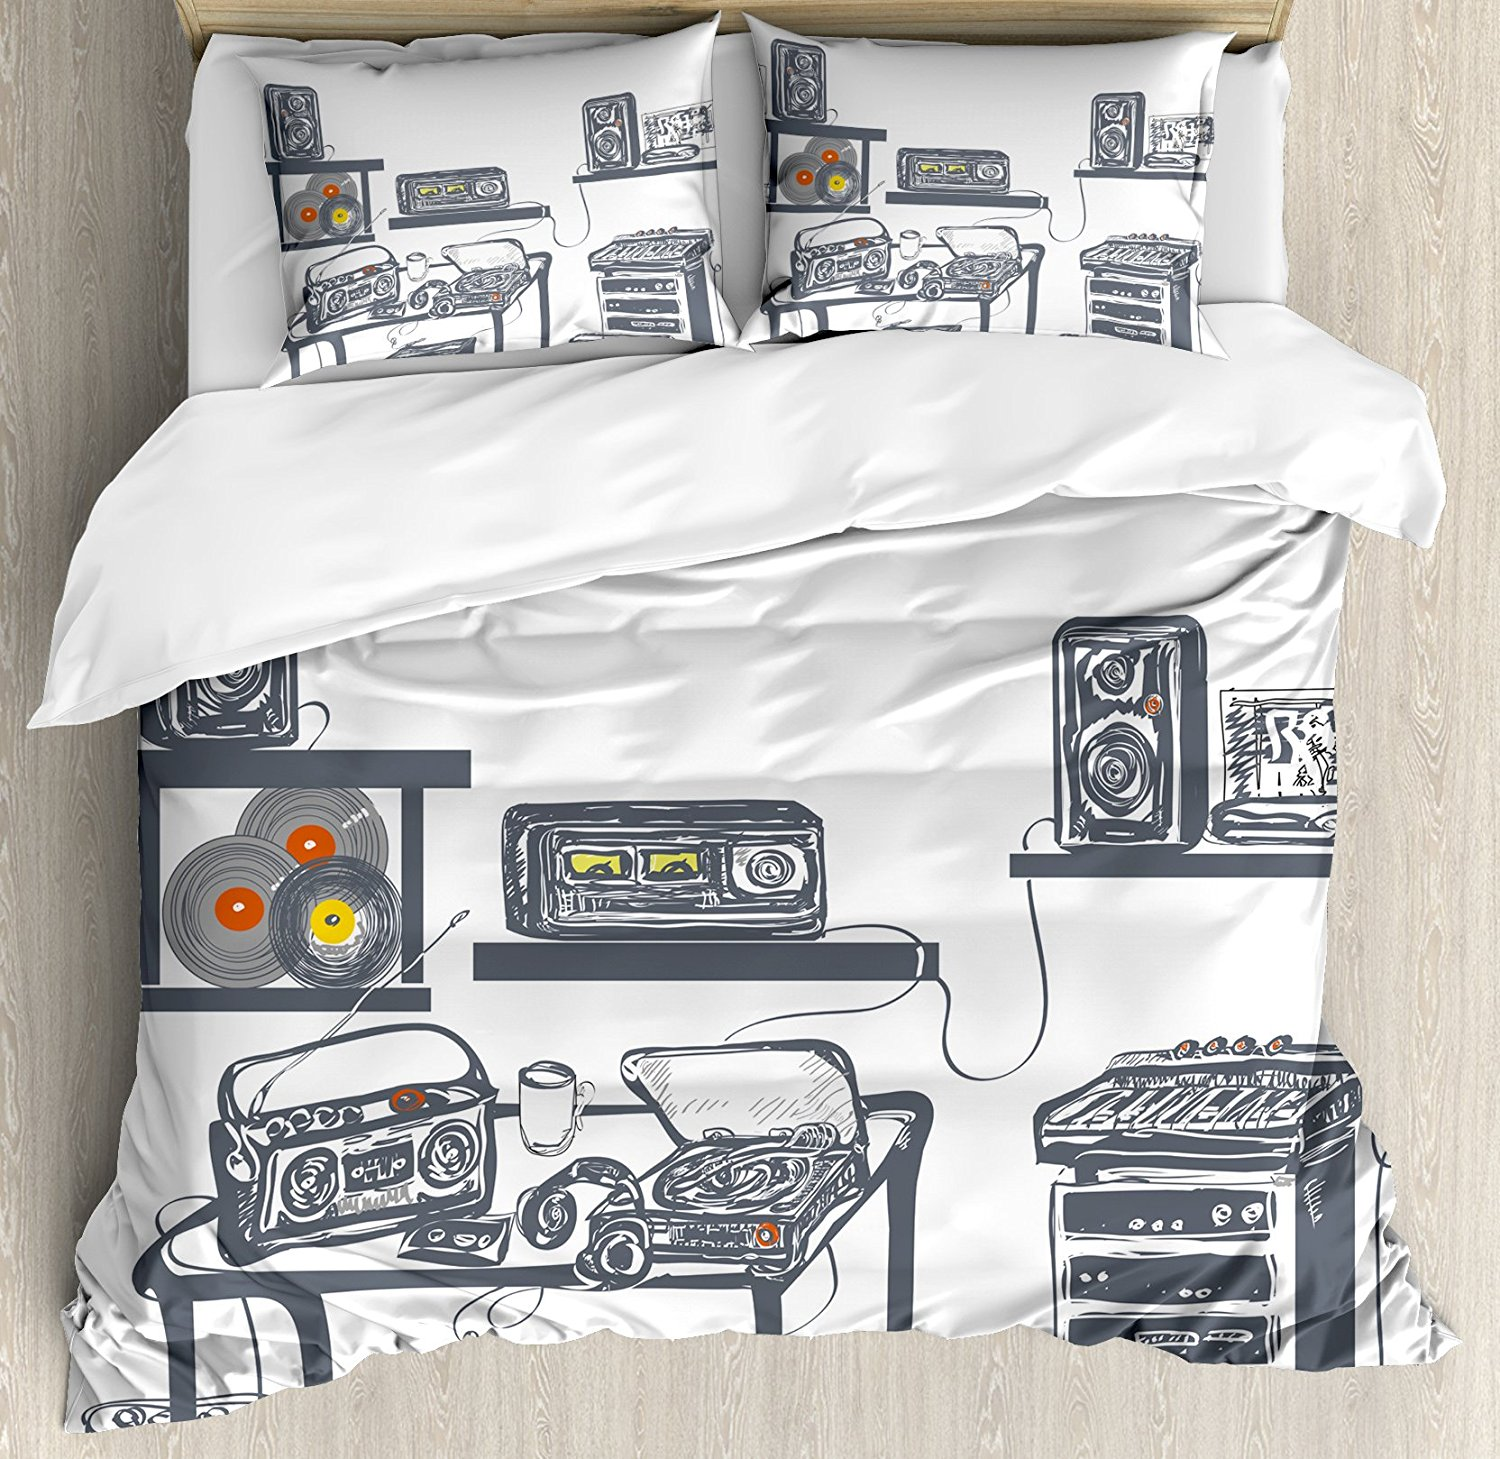 buy modern duvet cover set recording studio with music devices turntable. Black Bedroom Furniture Sets. Home Design Ideas